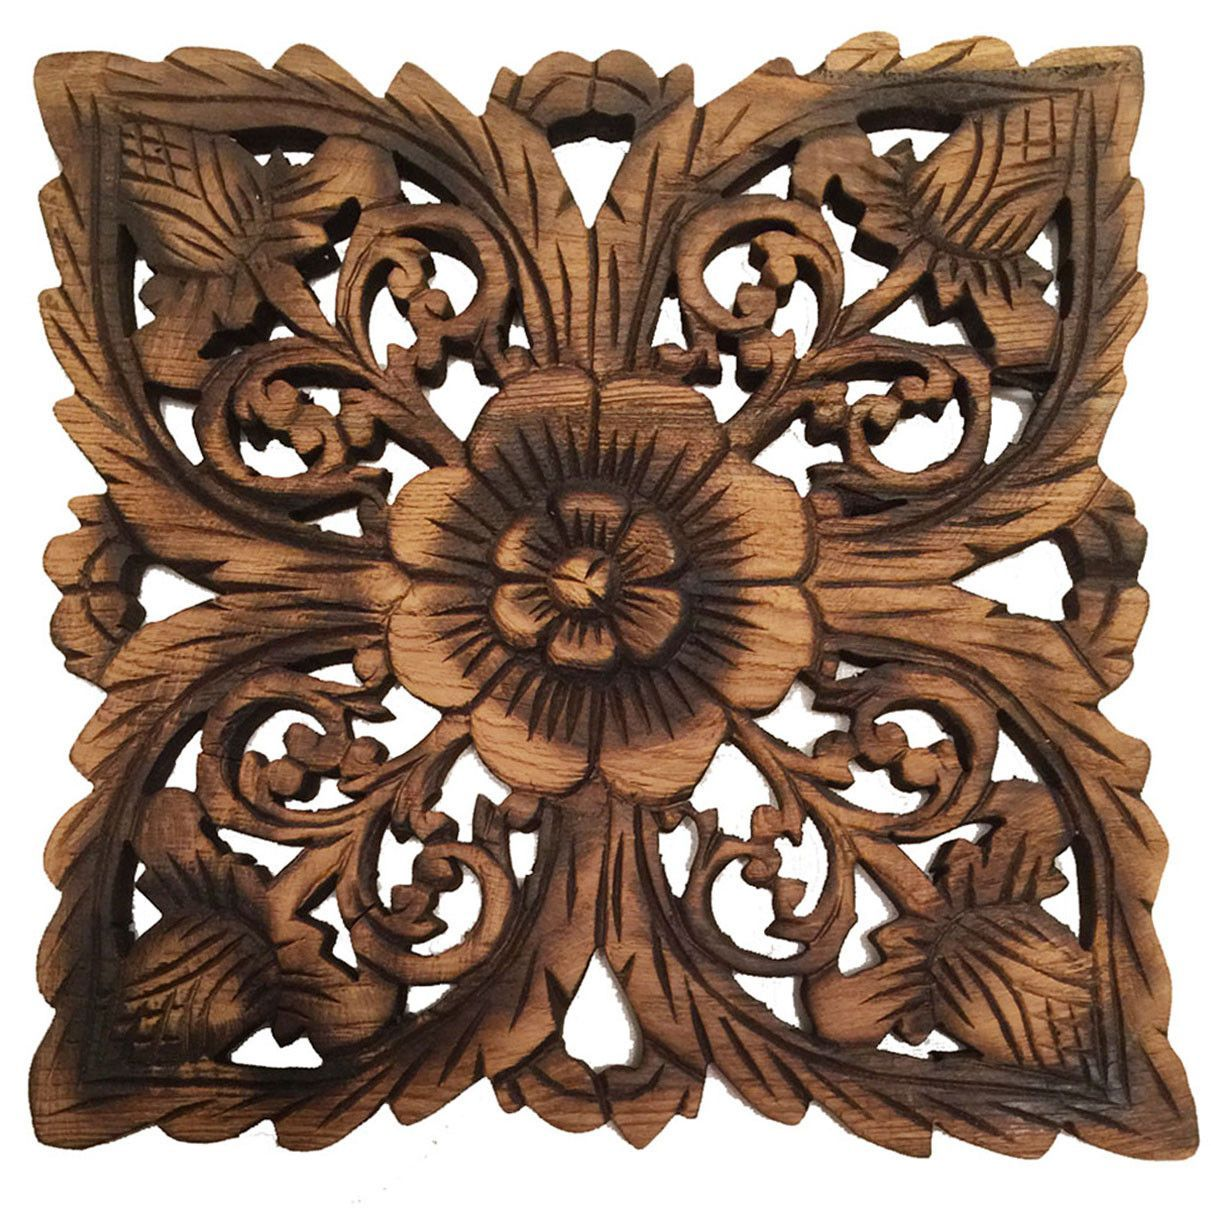 il decorative and photographed triangle beautiful carved wood store in chicago decor intricate panels carvings at the golden wooden